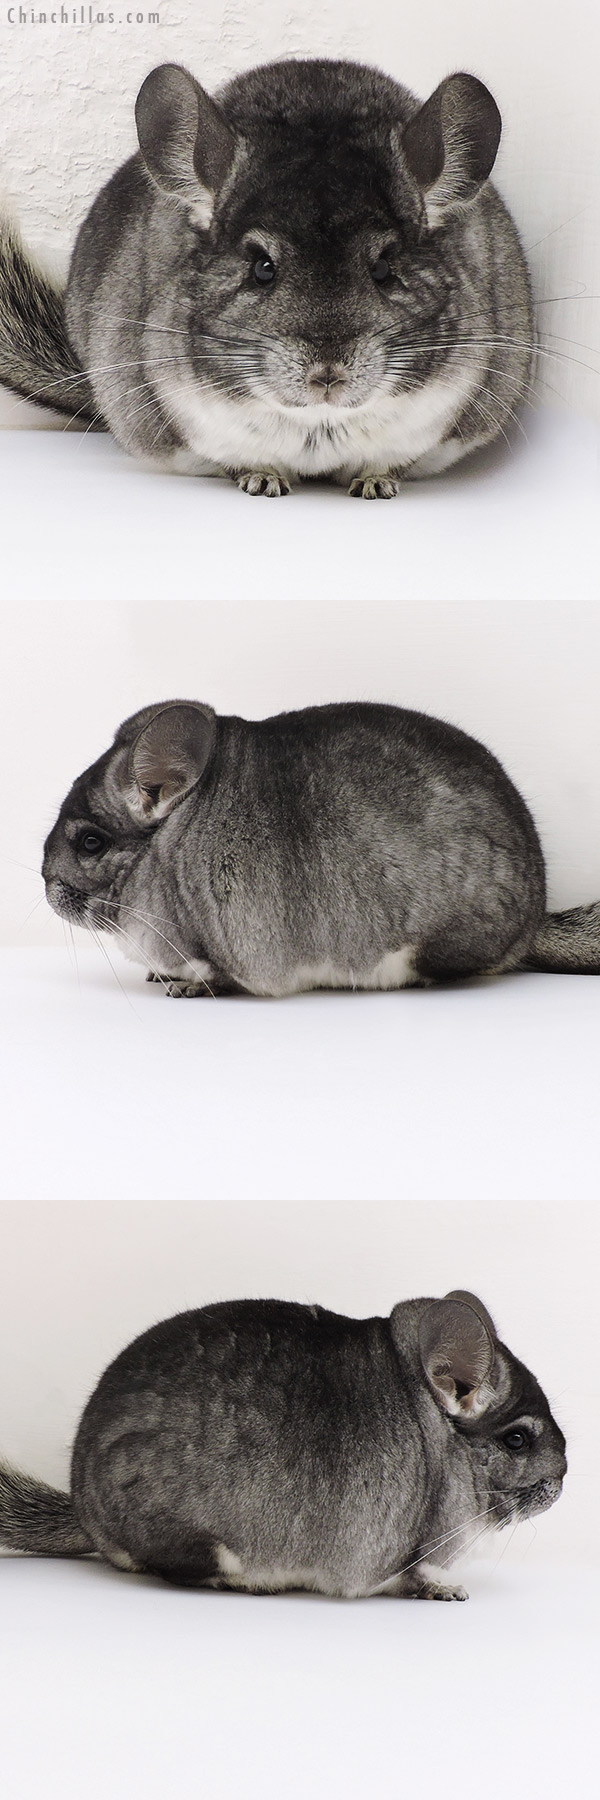 17189 Large Blocky Premium Production Quality Standard Female Chinchilla